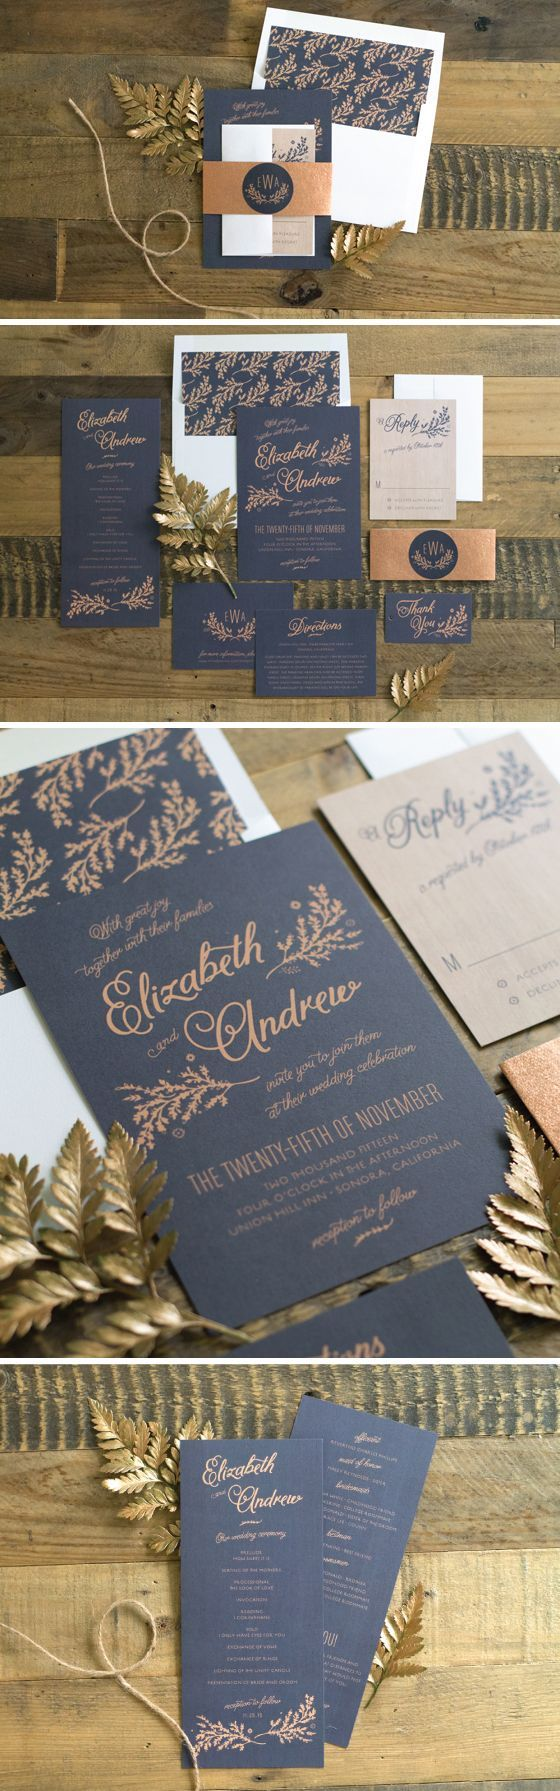 navy wedding invitations best 25 navy wedding invitations ideas on 6135